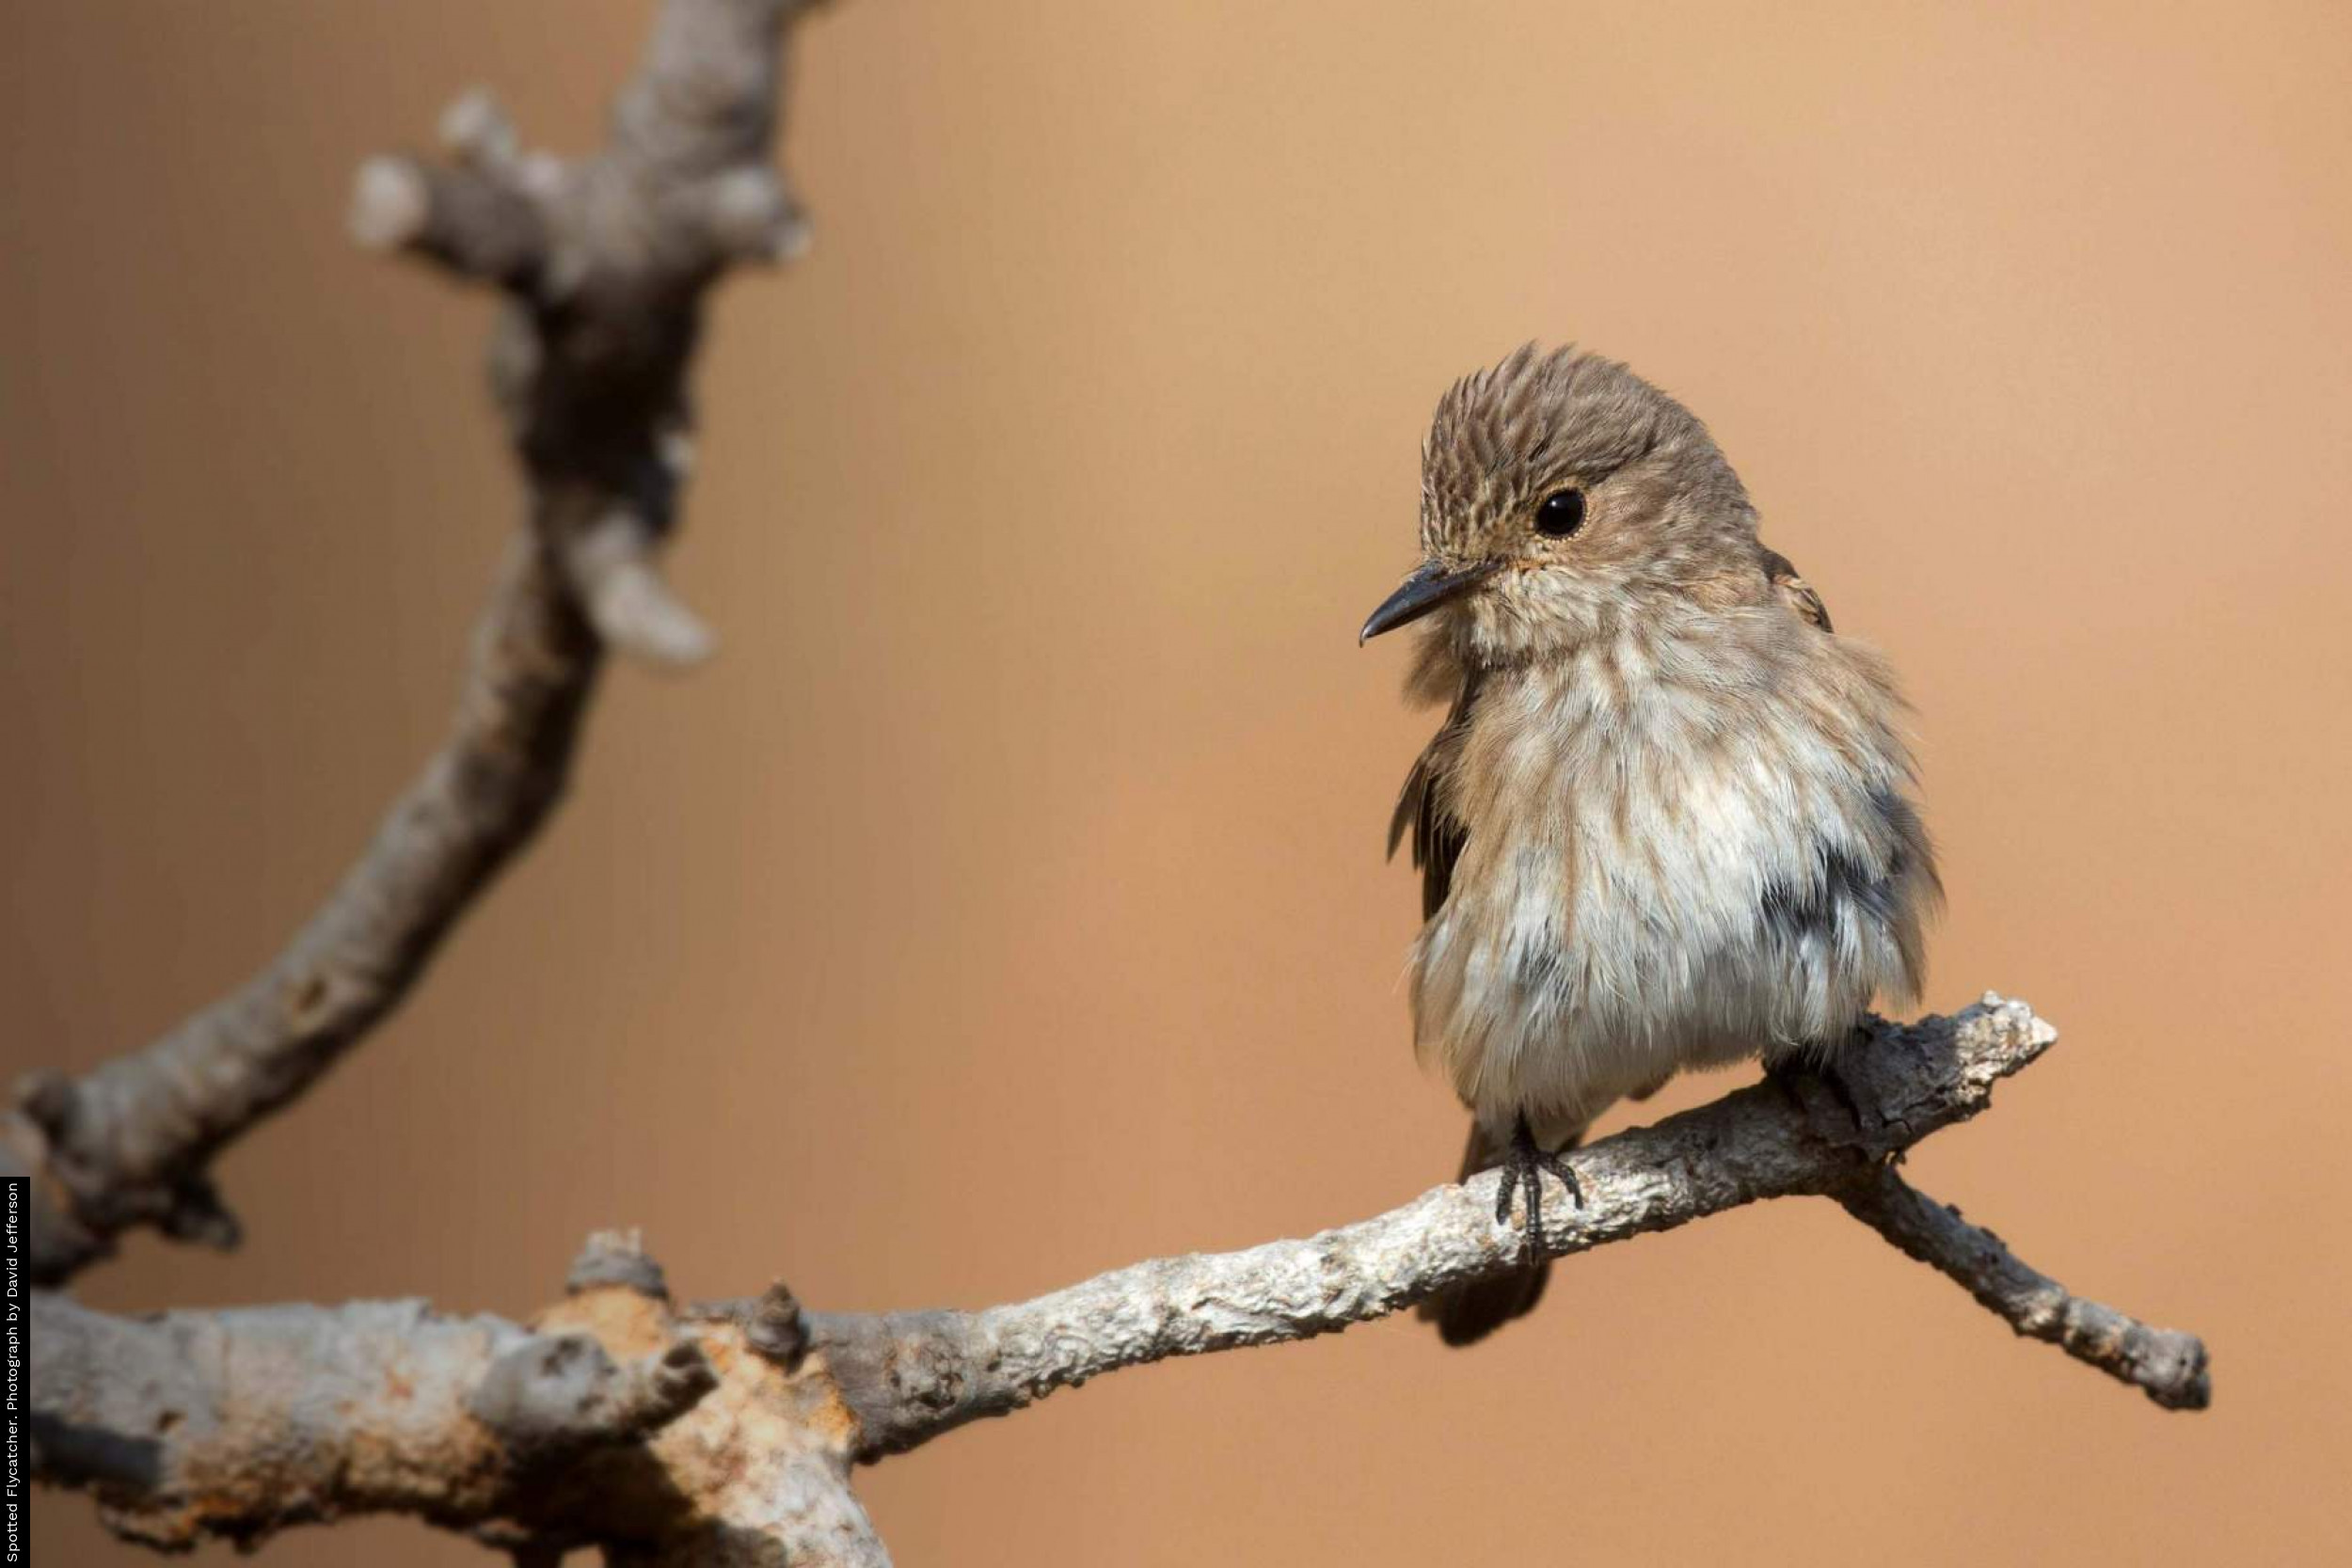 Spotted Flycatcher. Photograph by David Jefferson